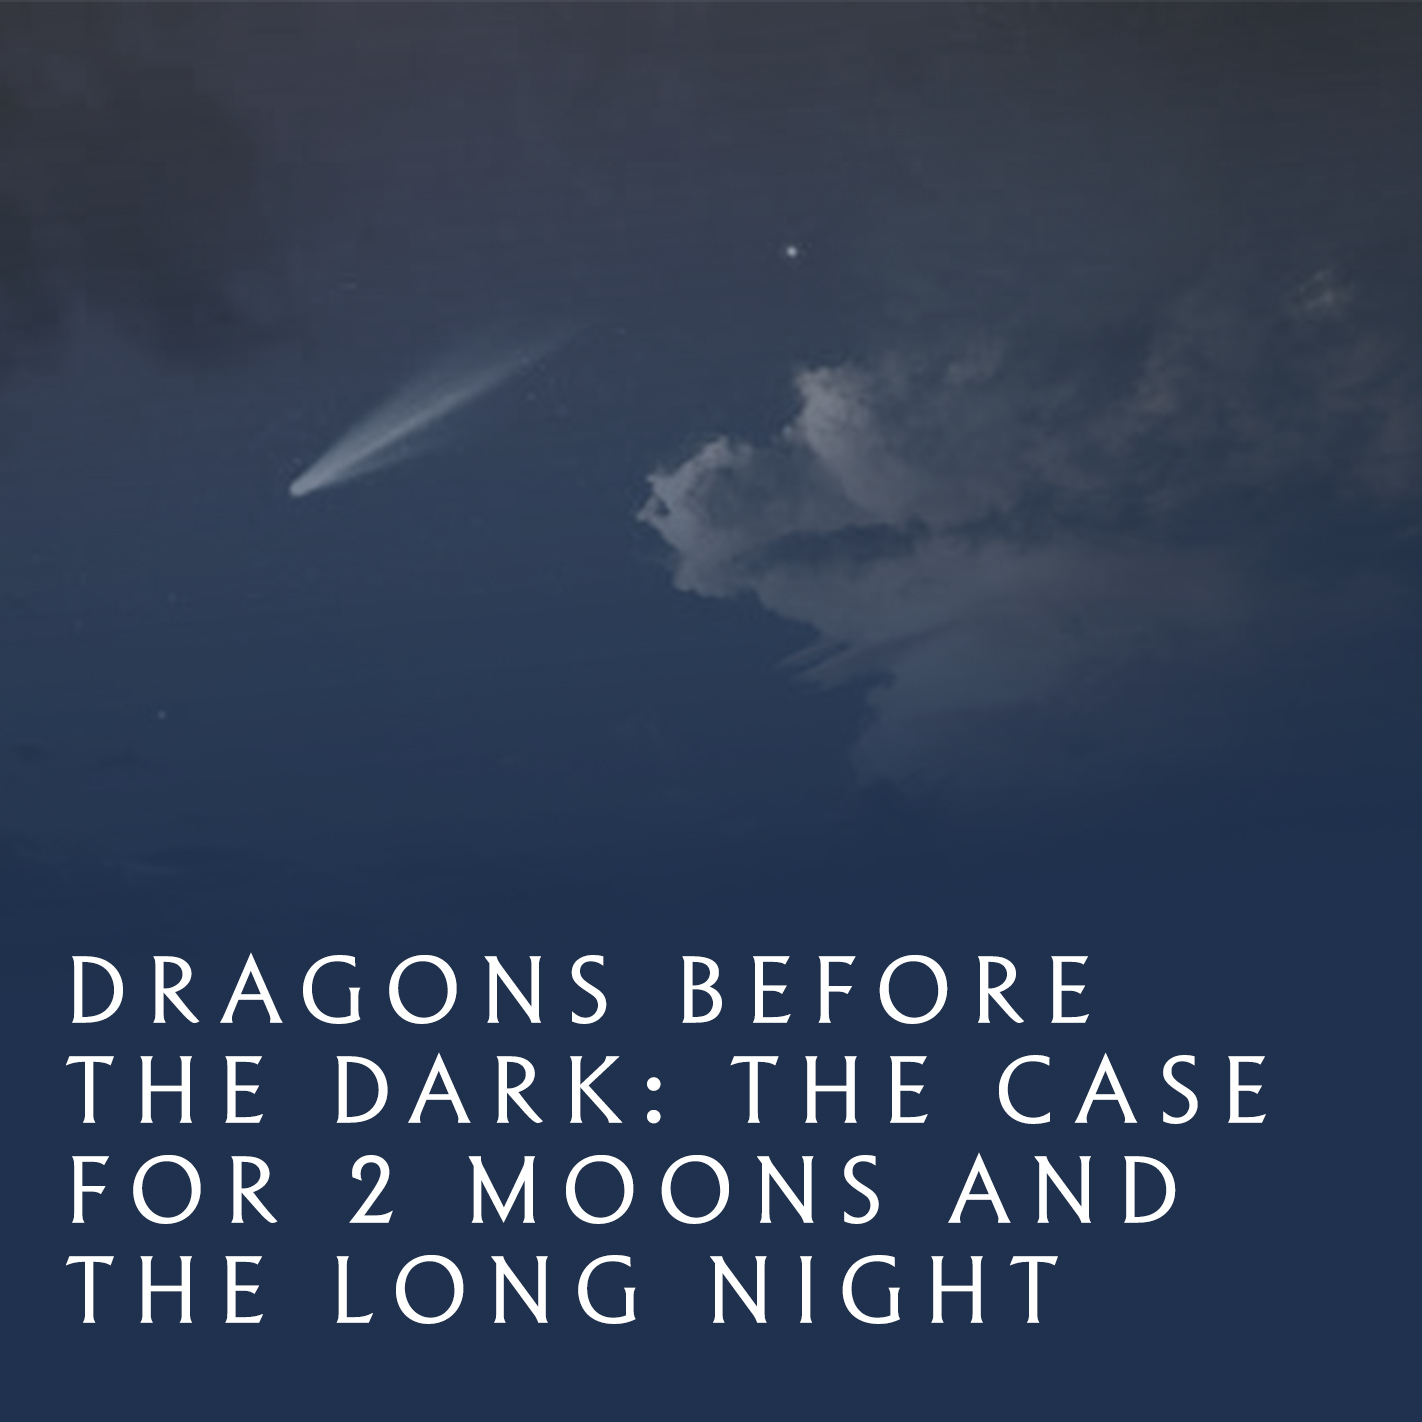 The Dothraki tell the legend that dragons were born from a second moon that once hung in the night sky. But what if the myth is real? This panel will analyze folklore and real-life science, making the case for a link between the destruction of the moon and the reason the Long Night was so deep and dark.